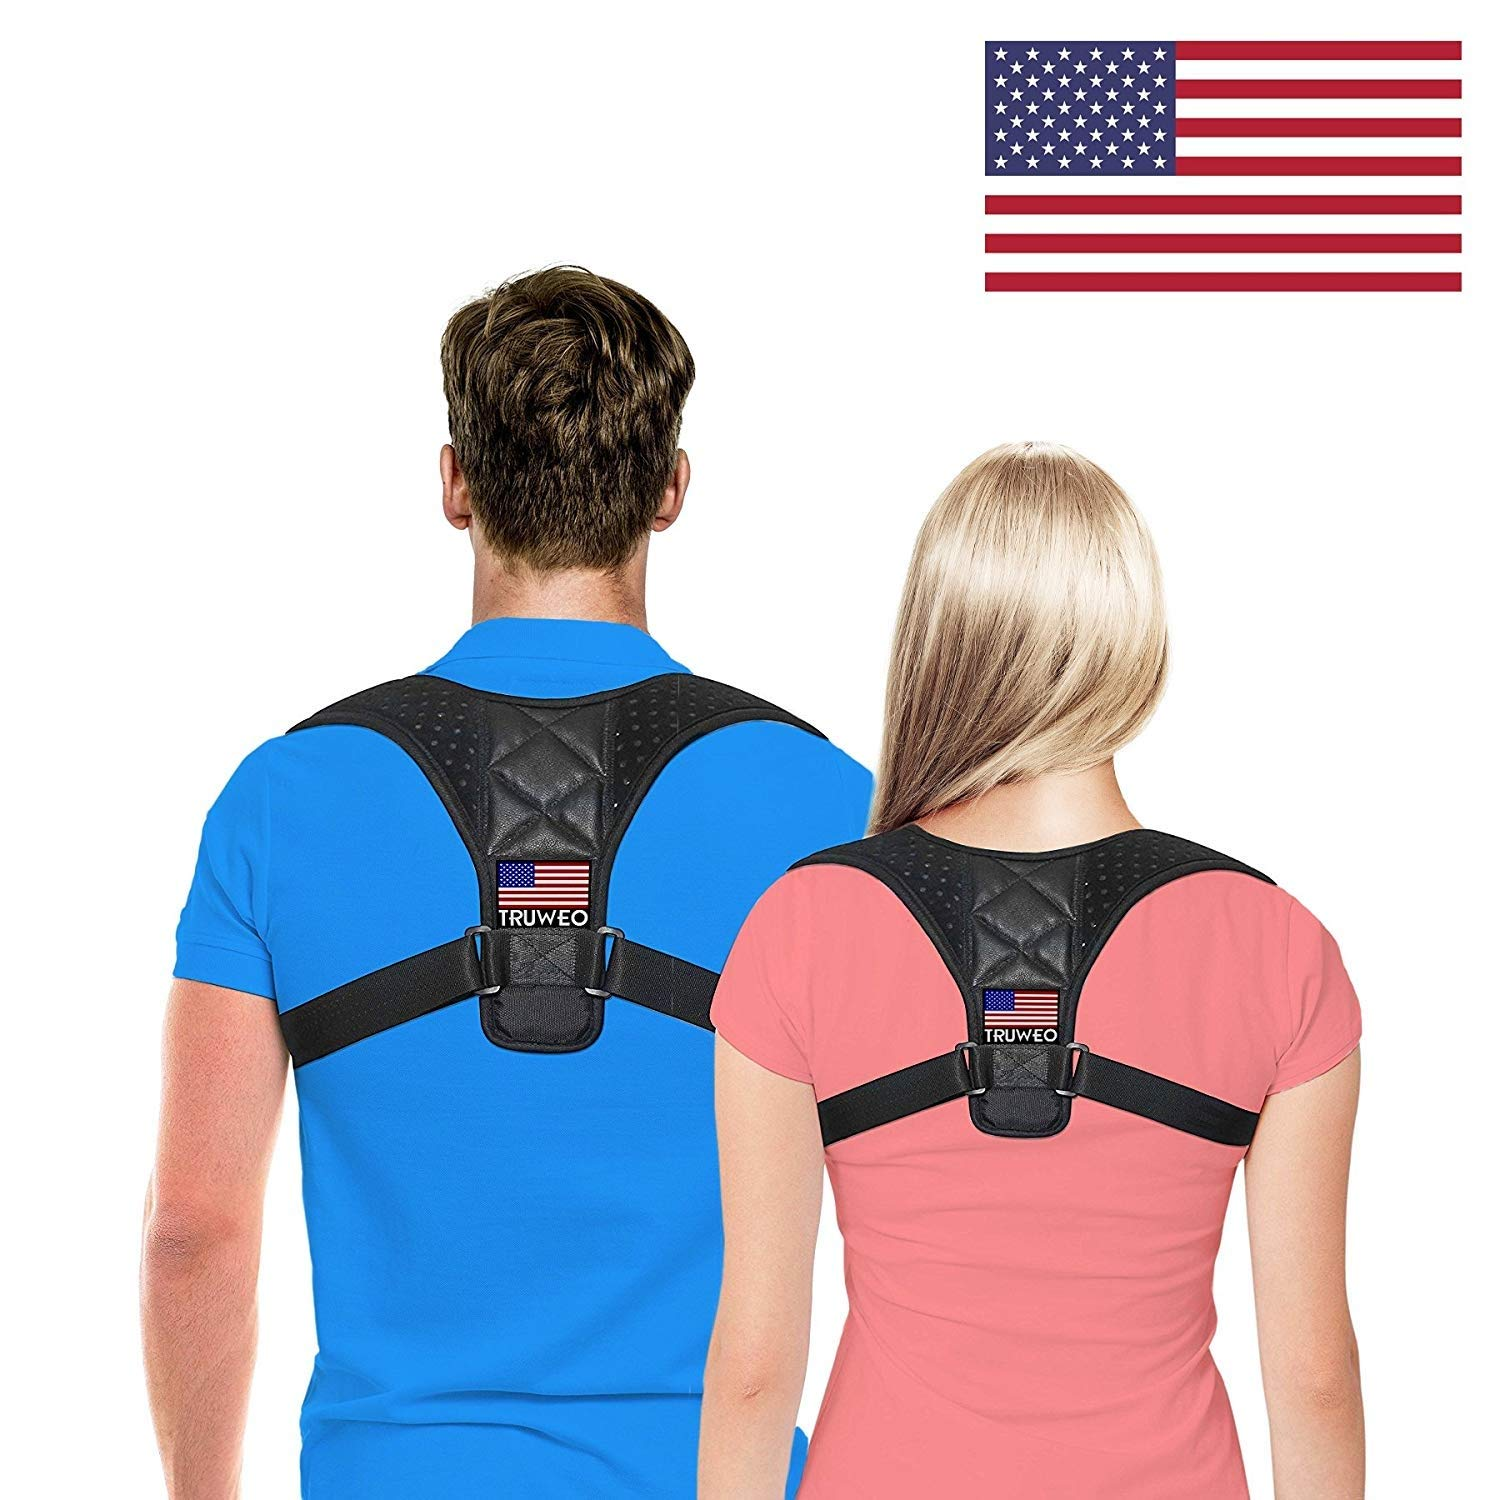 Posture Corrector for Men & Women by Truweo – USA Designed Upper Back Support Brace for Providing Pain Relief from Neck, Back, Shoulder & Bad Posture - Clavicle Support Brace for Slouching & Hunching